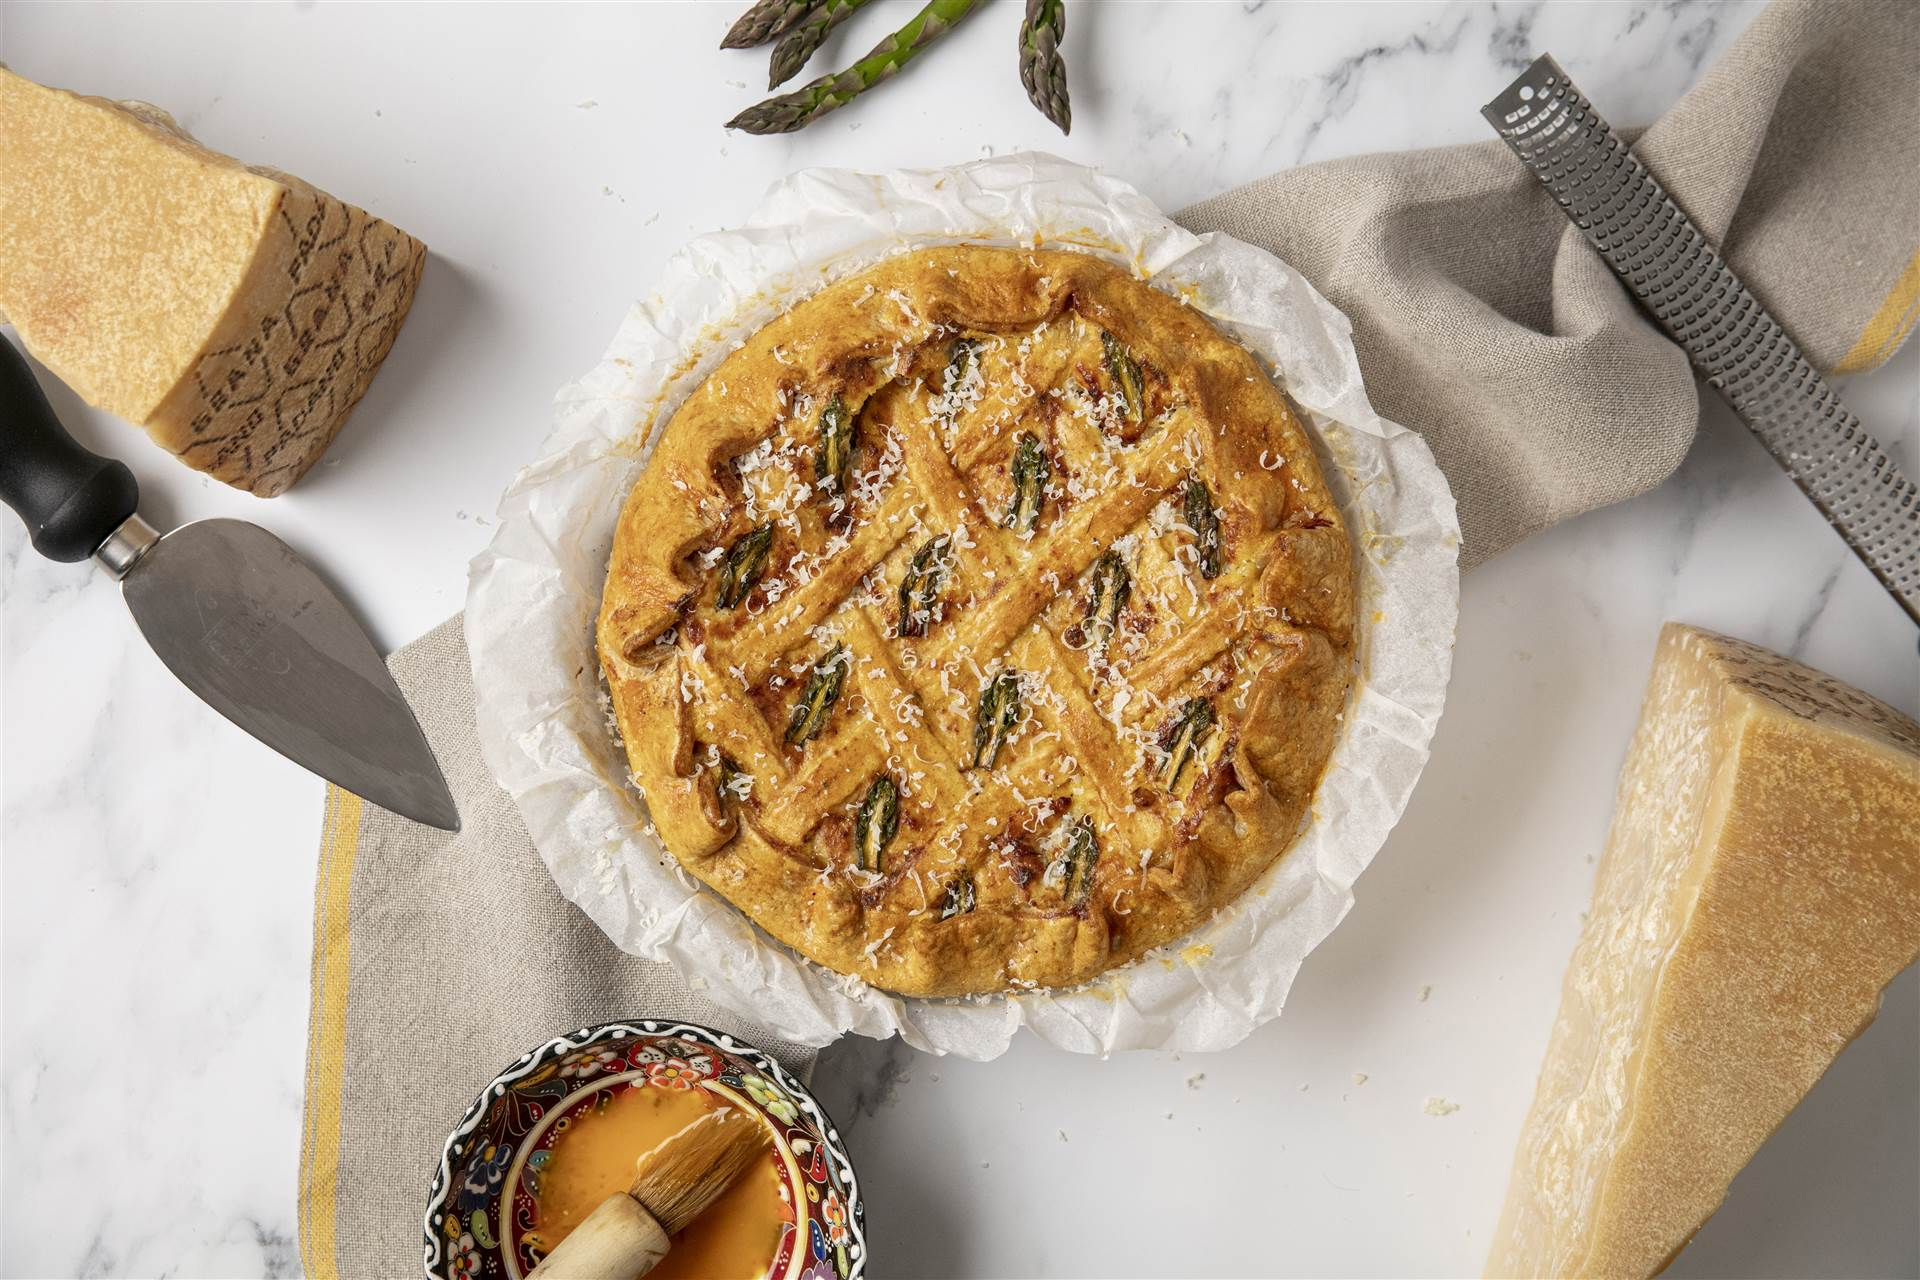 Grana Padano and Asparagus 'Pastiera' (Pie)